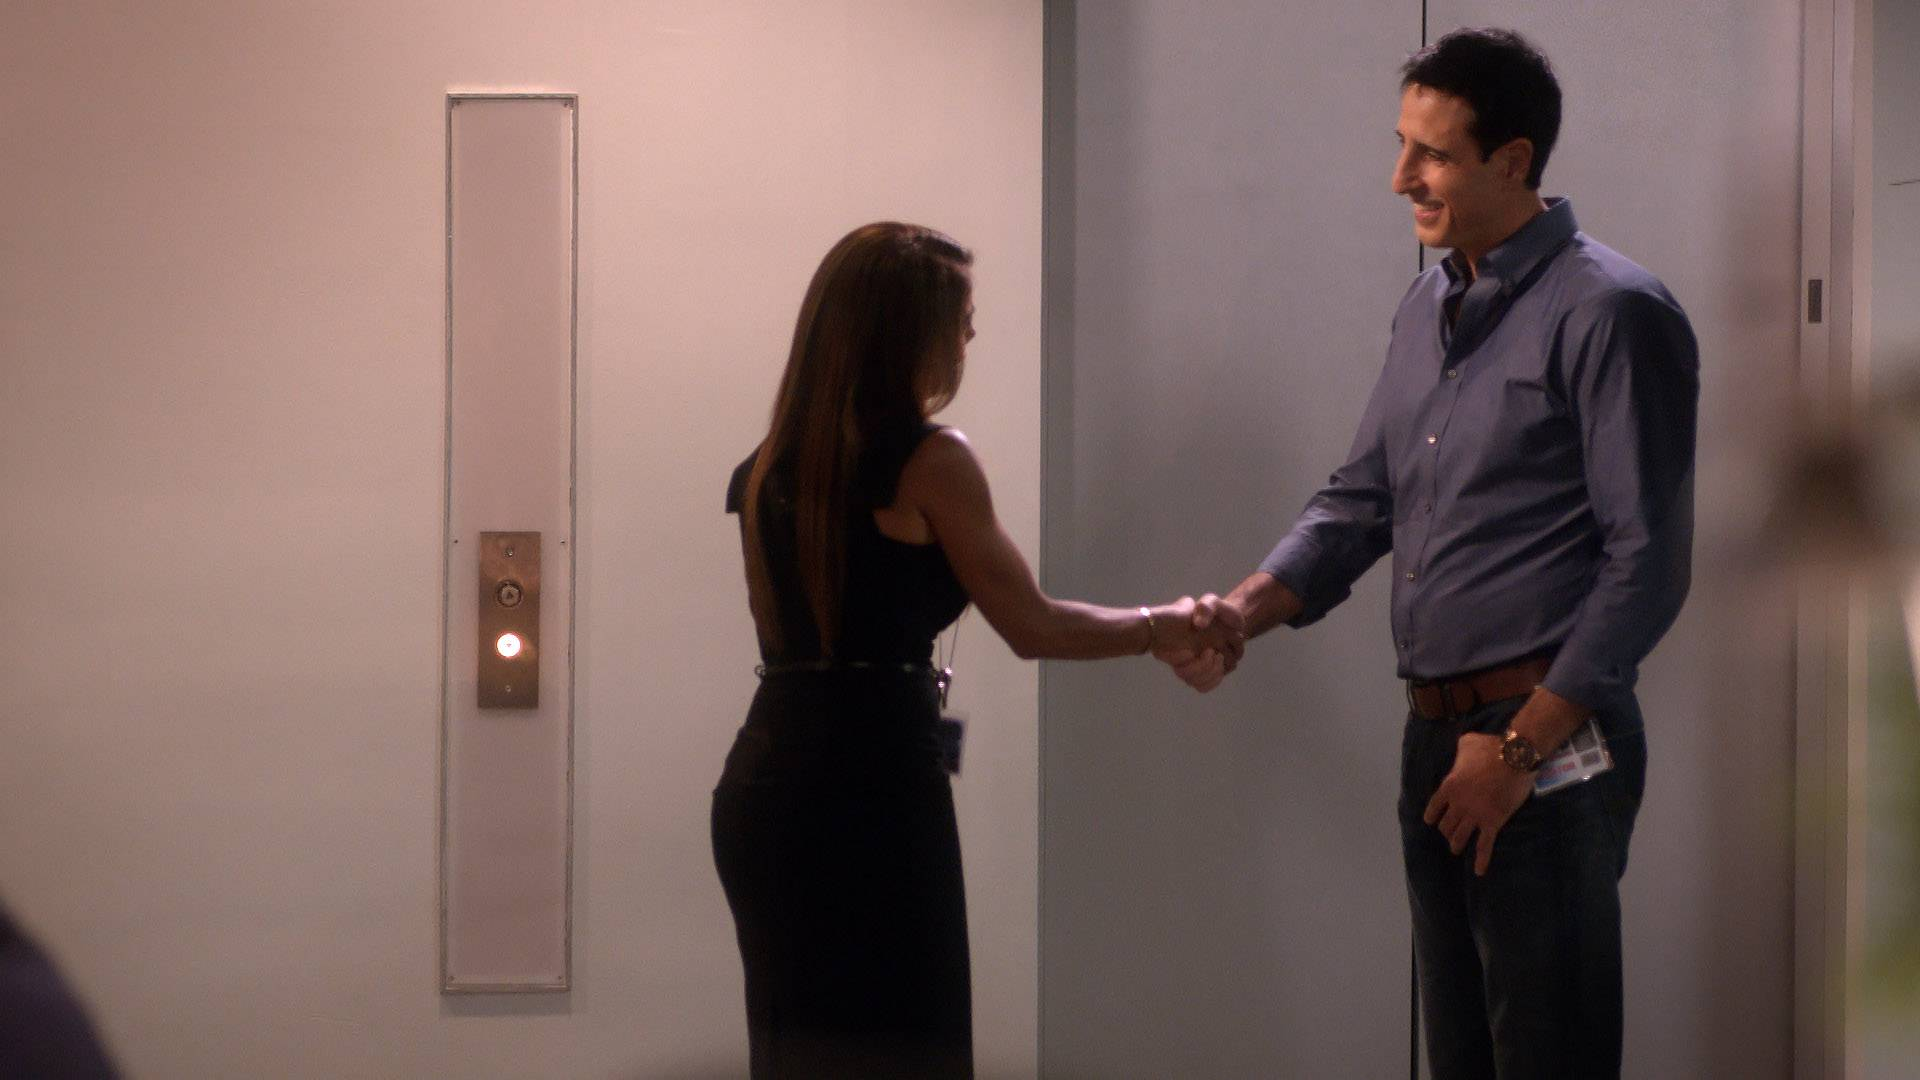 Kara Meets a Cutie  - While MJ is out and about, Kara finds time to meet a cutie by chance encounter.(Photo: BET)